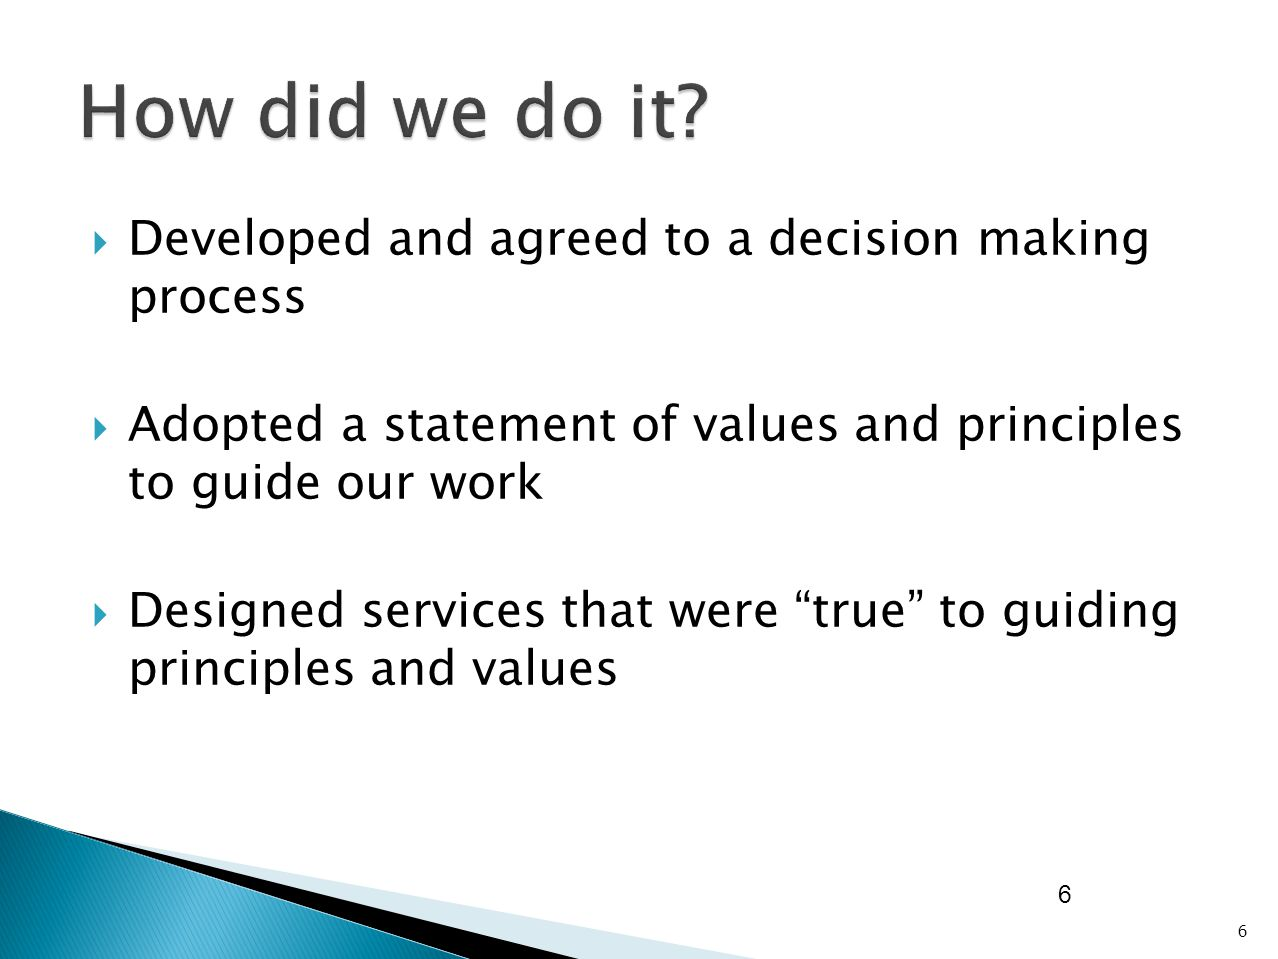  Developed and agreed to a decision making process  Adopted a statement of values and principles to guide our work  Designed services that were true to guiding principles and values 6 6